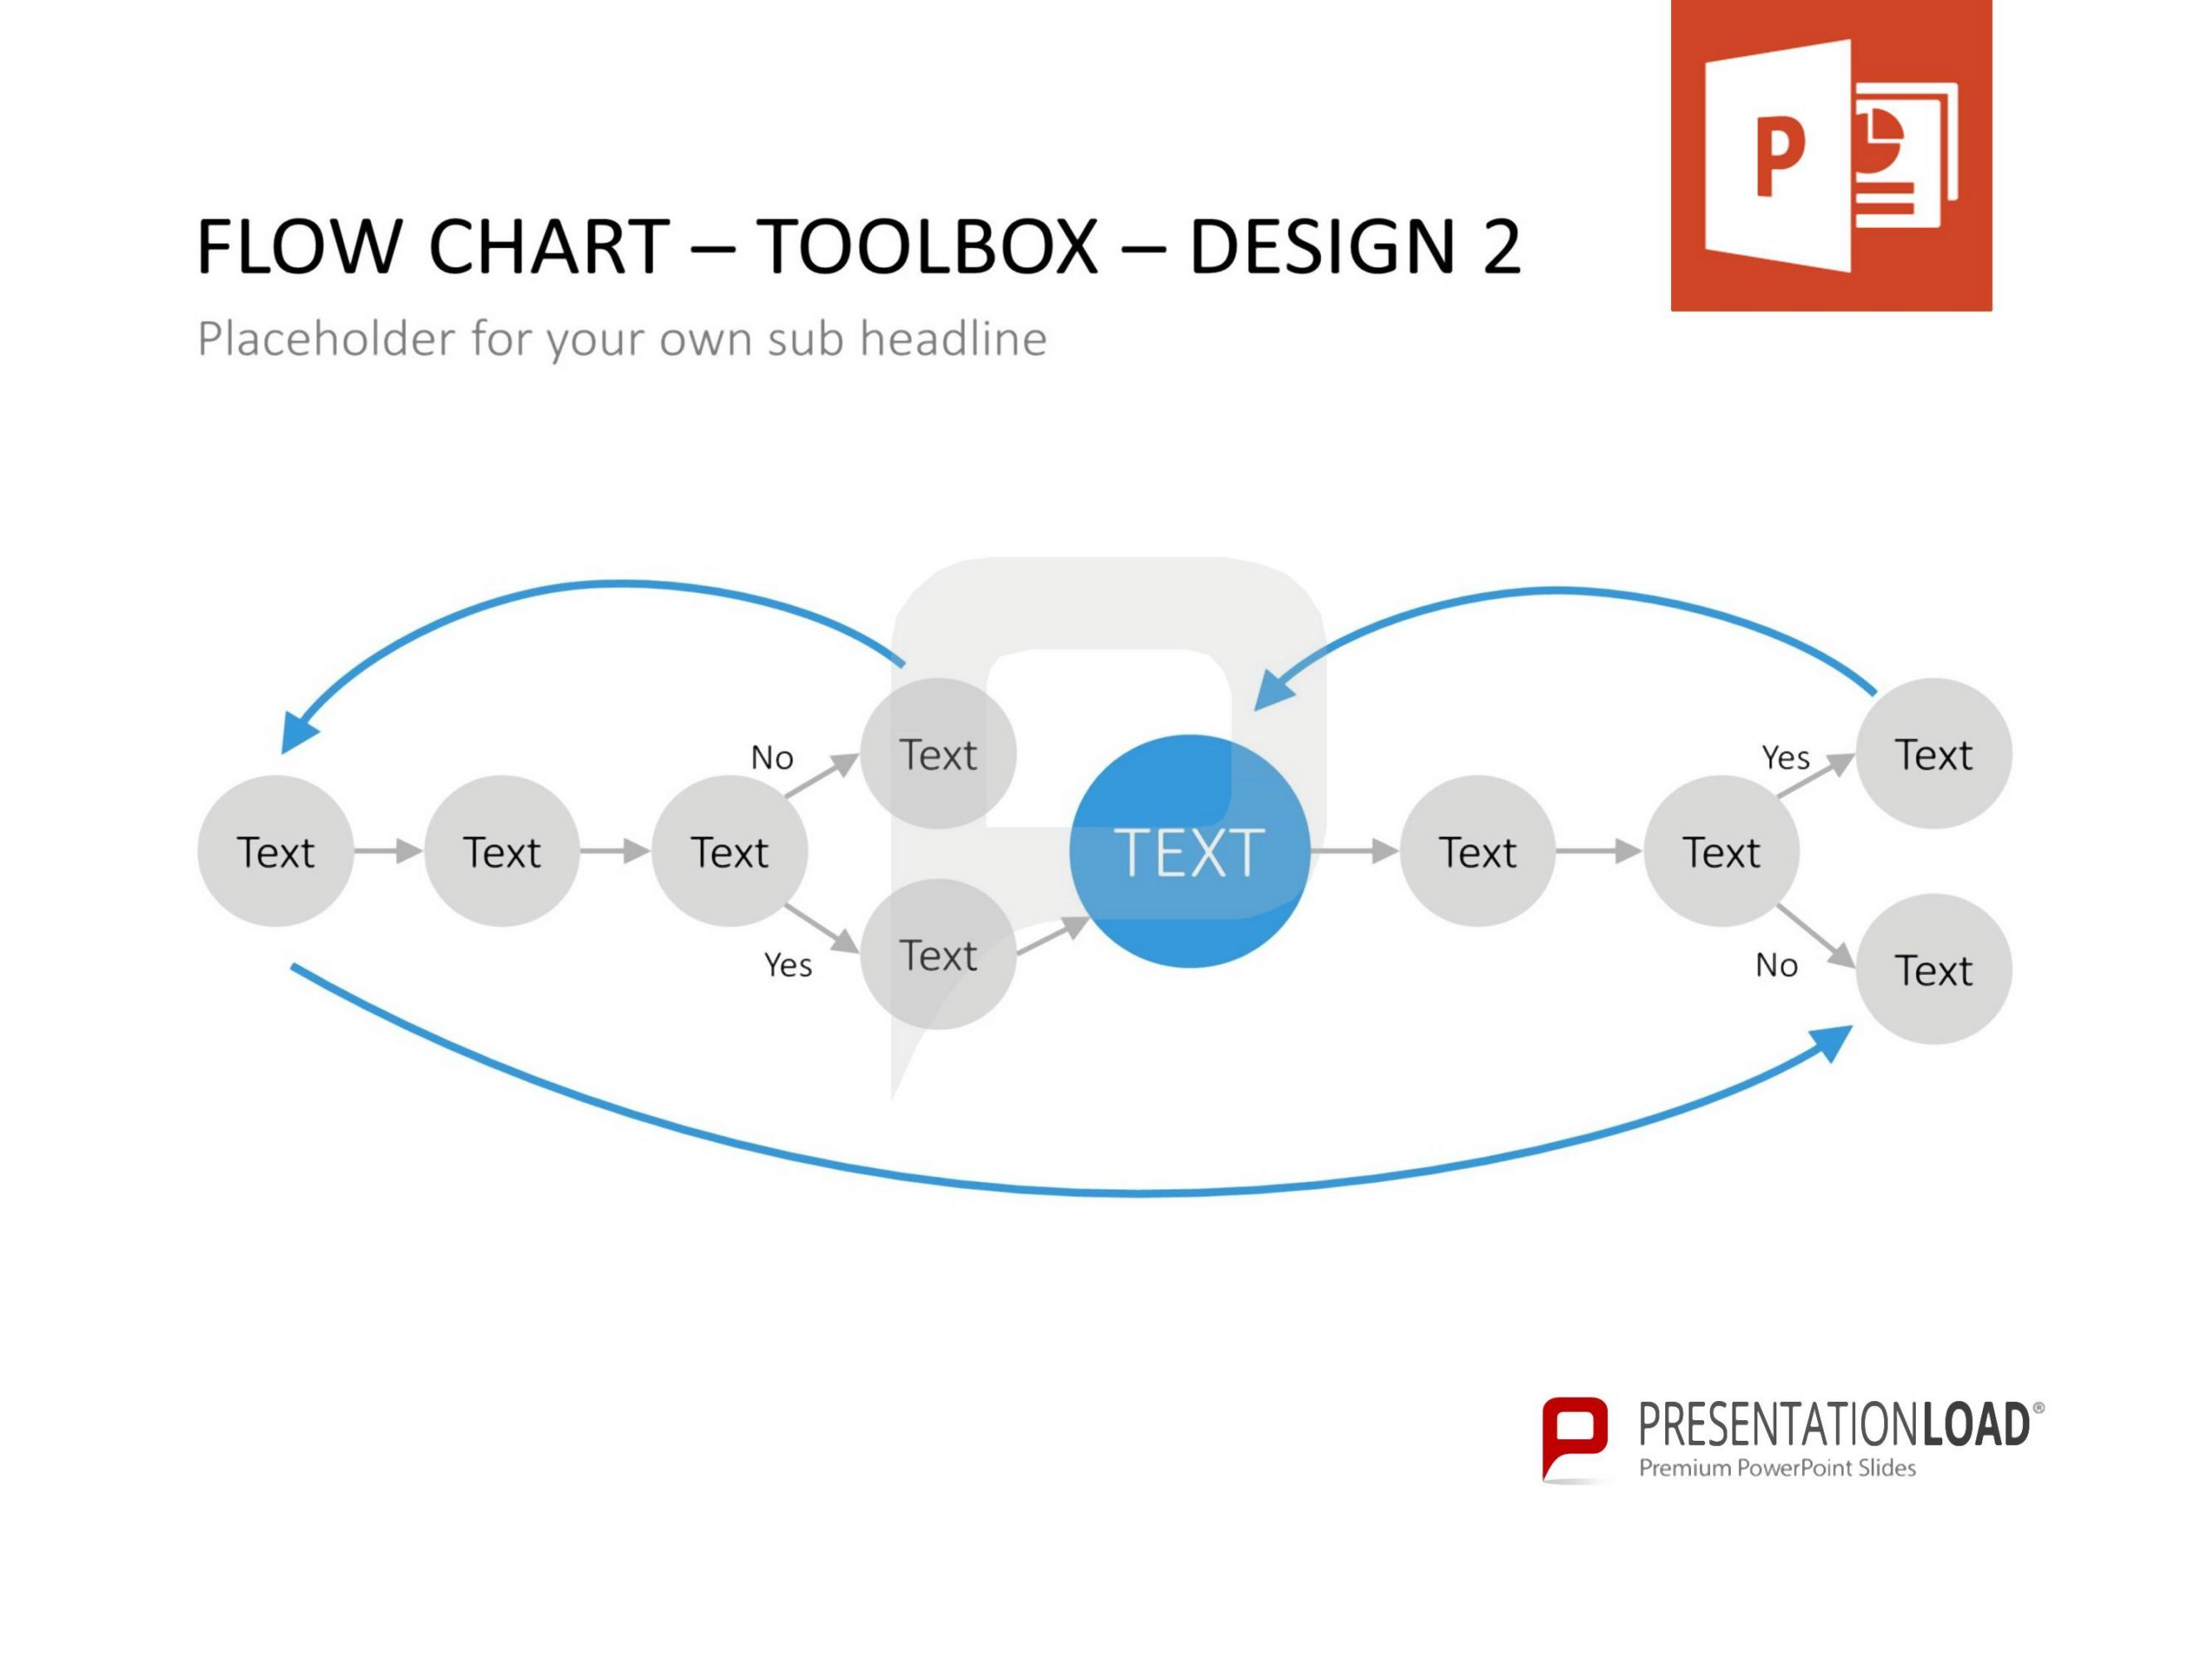 8c2a9ff14febe6e4387d01510820274c have you already tried our new flow chart toolbox for powerpoint